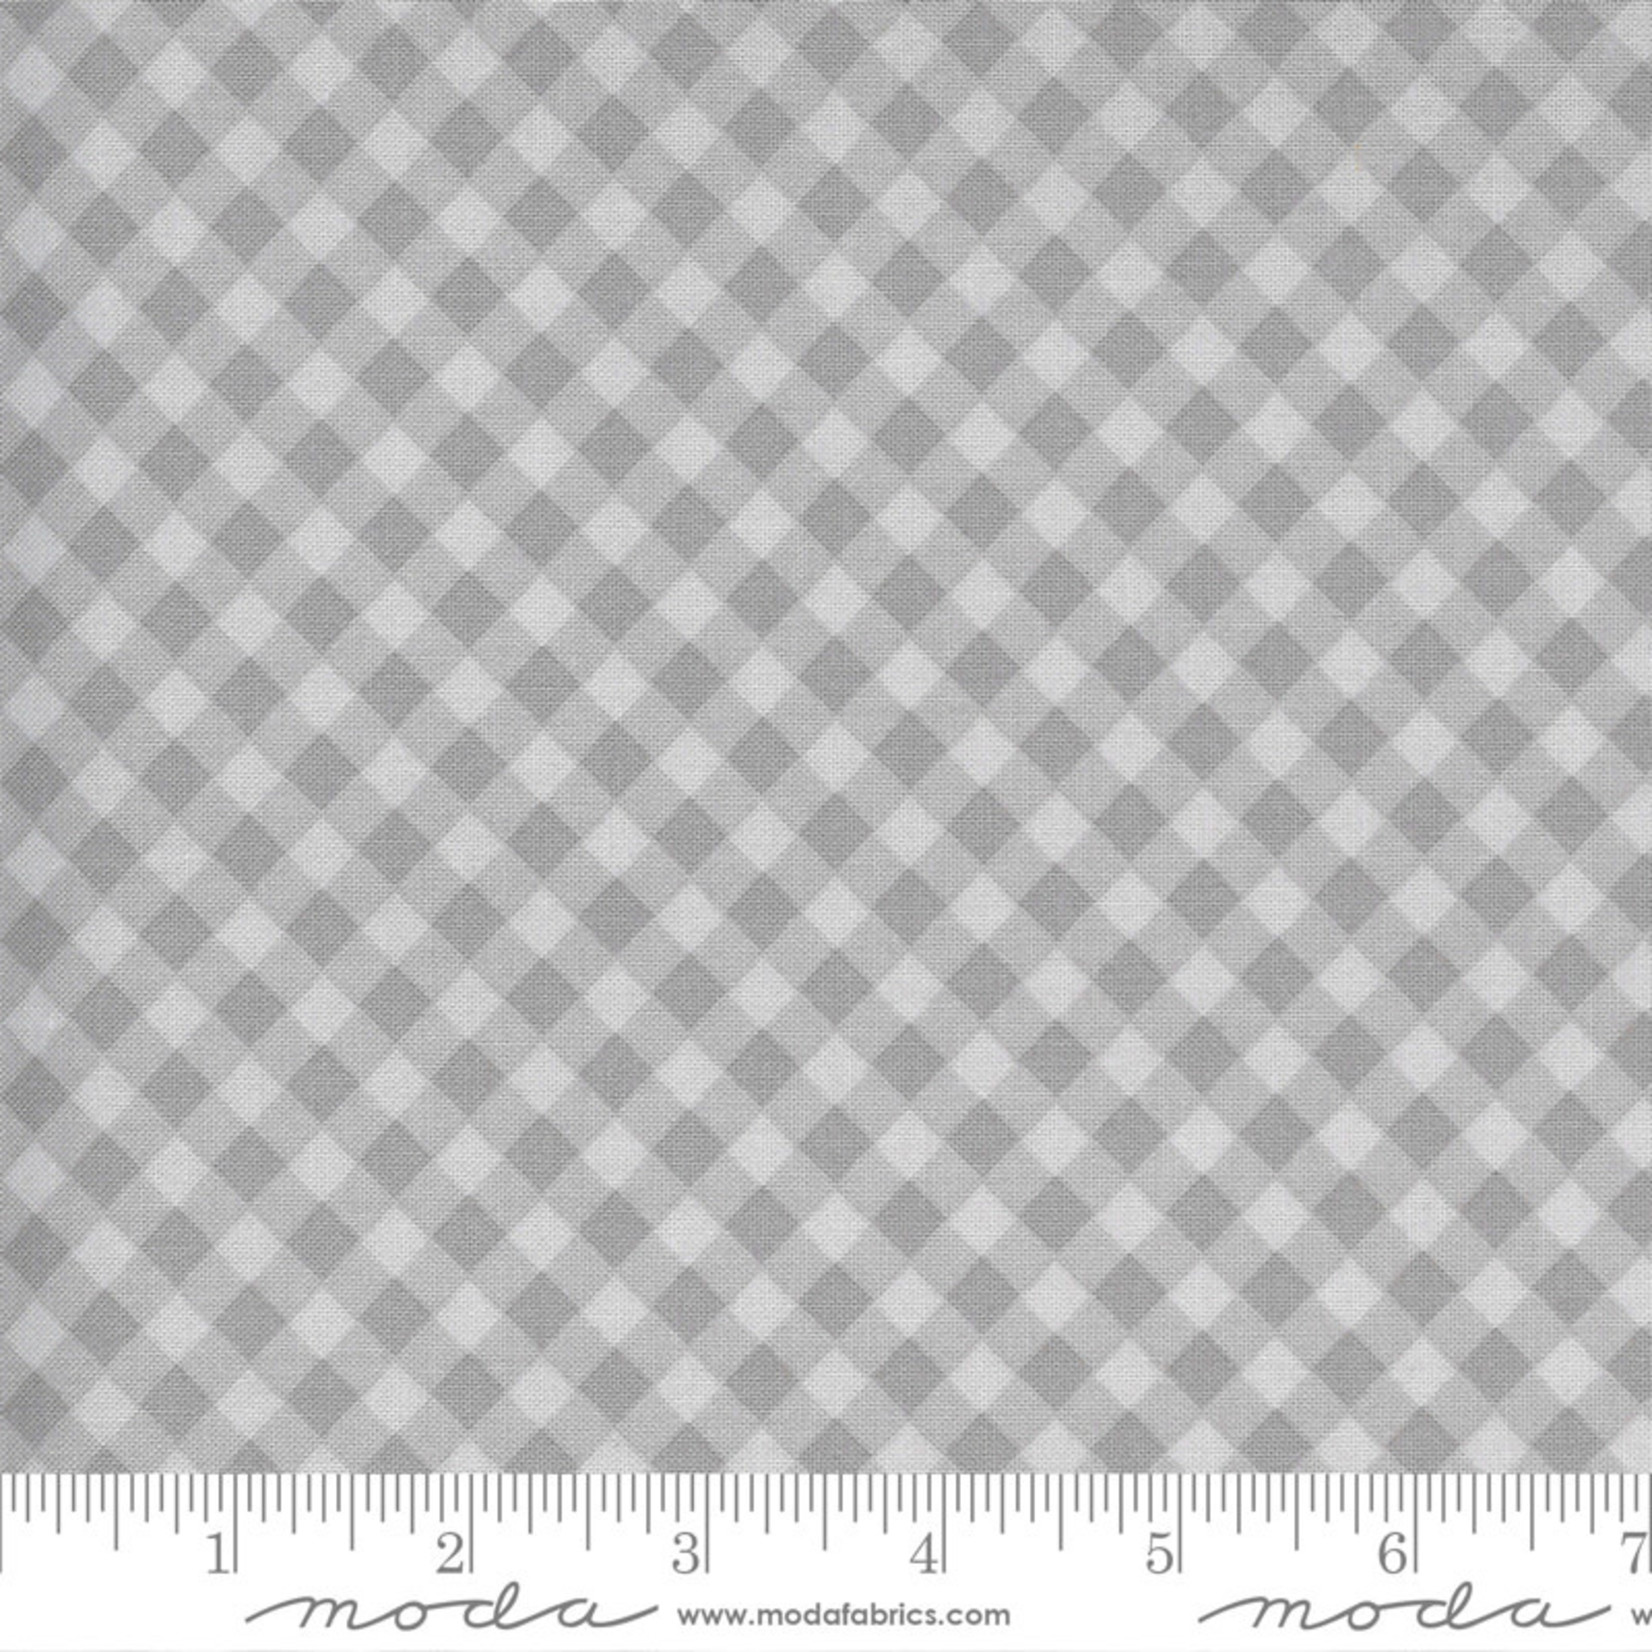 Sweetwater Spring Chicken, Gingham, Grey 55523-16 $0.20 per cm or $20/m